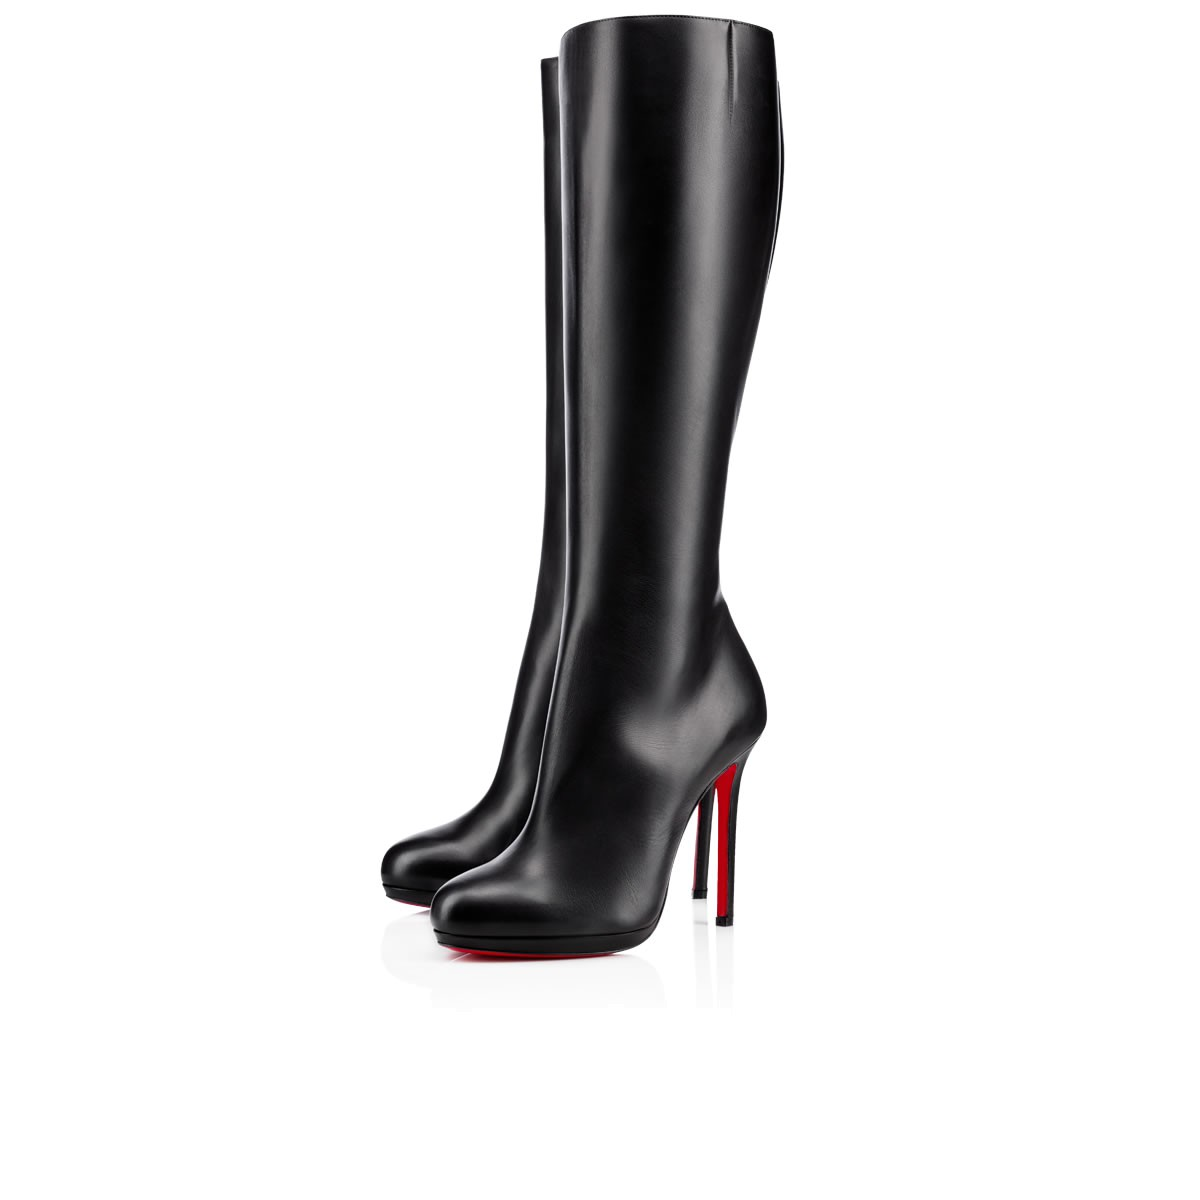 Botalili Tall Red Sole Boot in Black